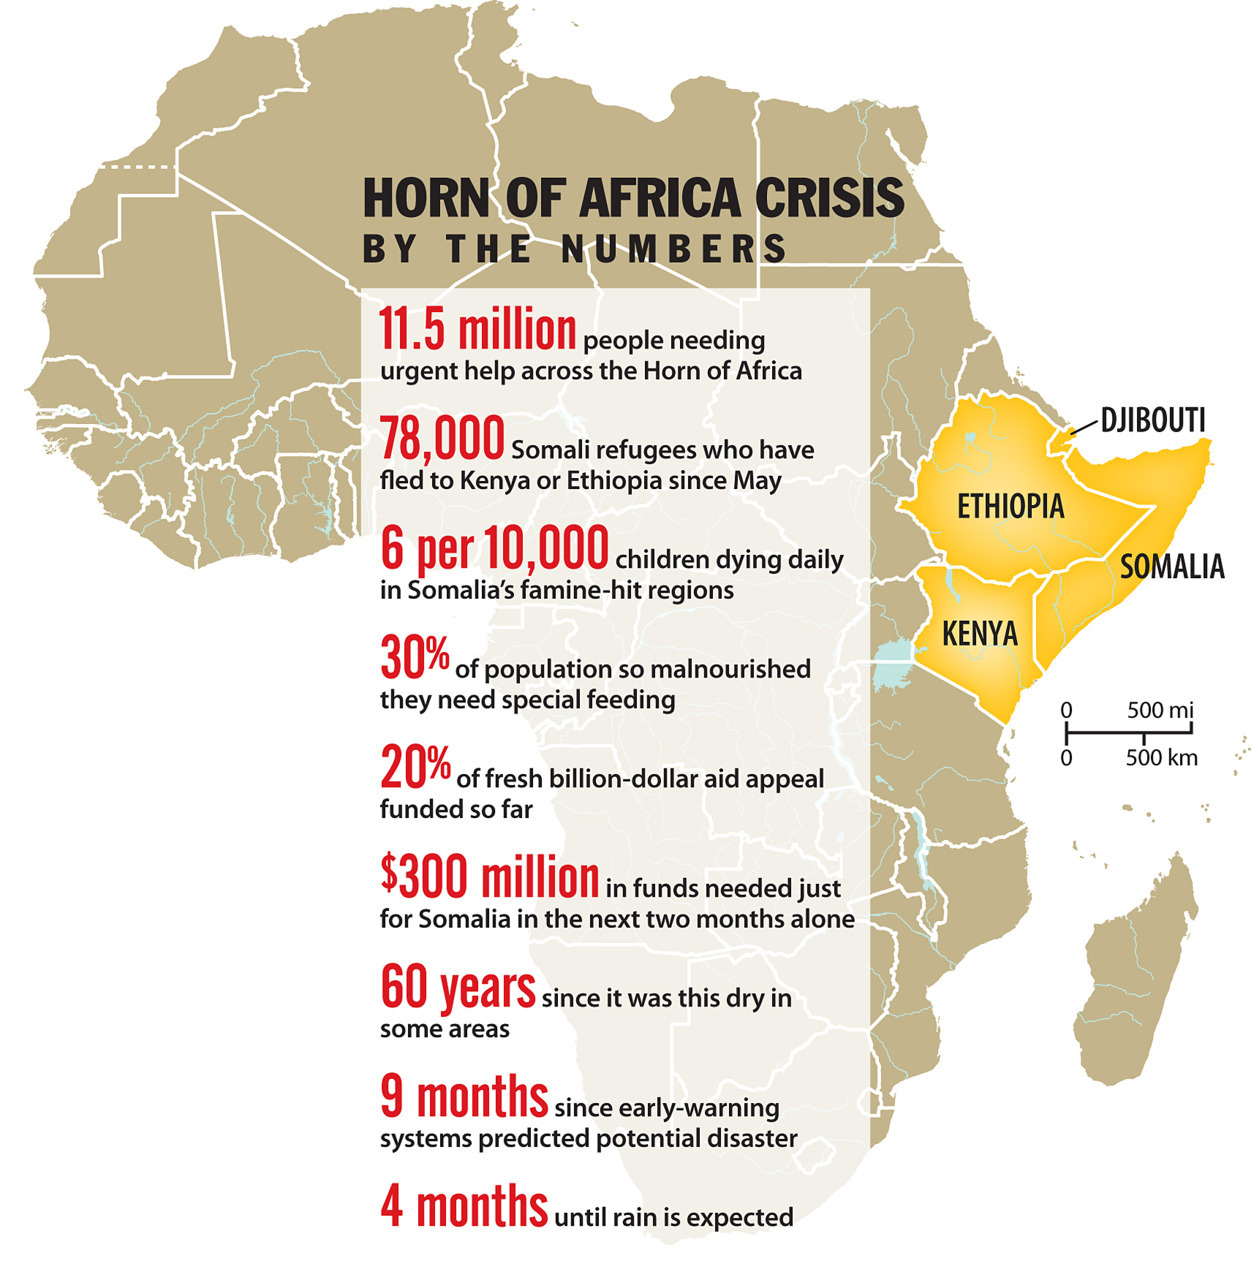 csmonitor:  Horn of Africa Crisis: By the Numbers Graphic by Rich Clabaugh/Monitor staff